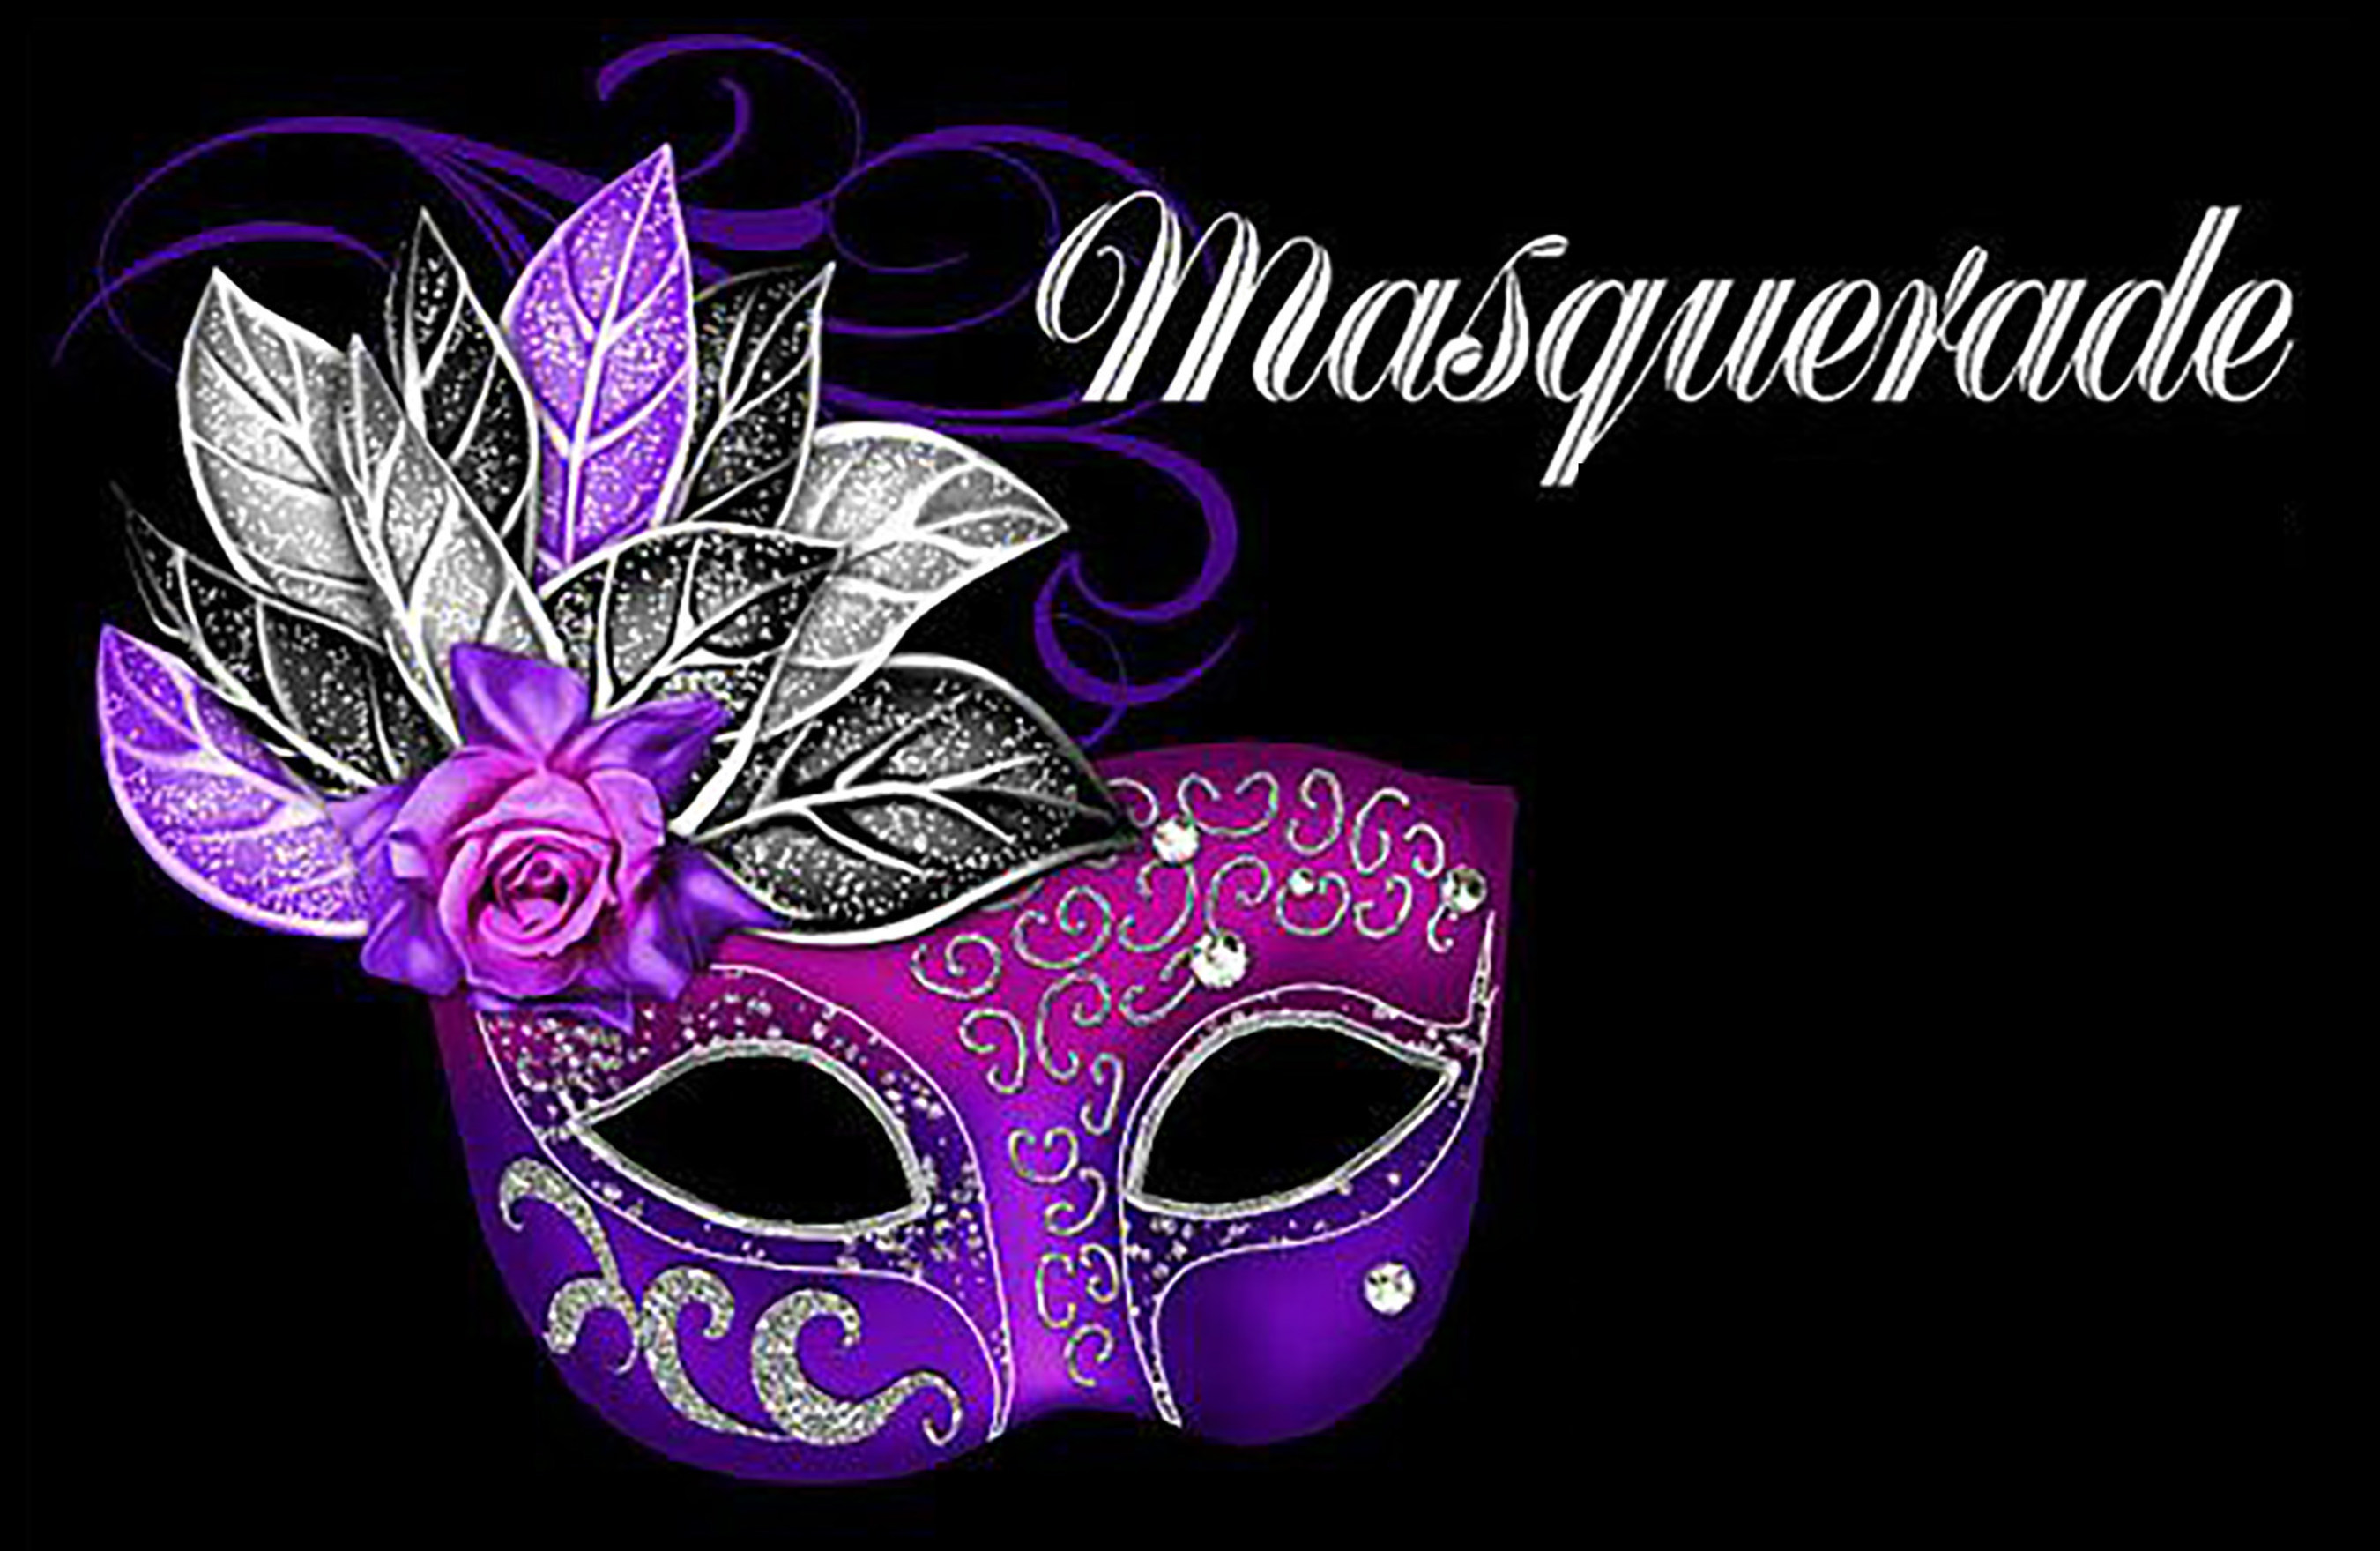 Take A Step Back in Time at the Victory Victorian Masquerade Ball Benefiting Victory Living